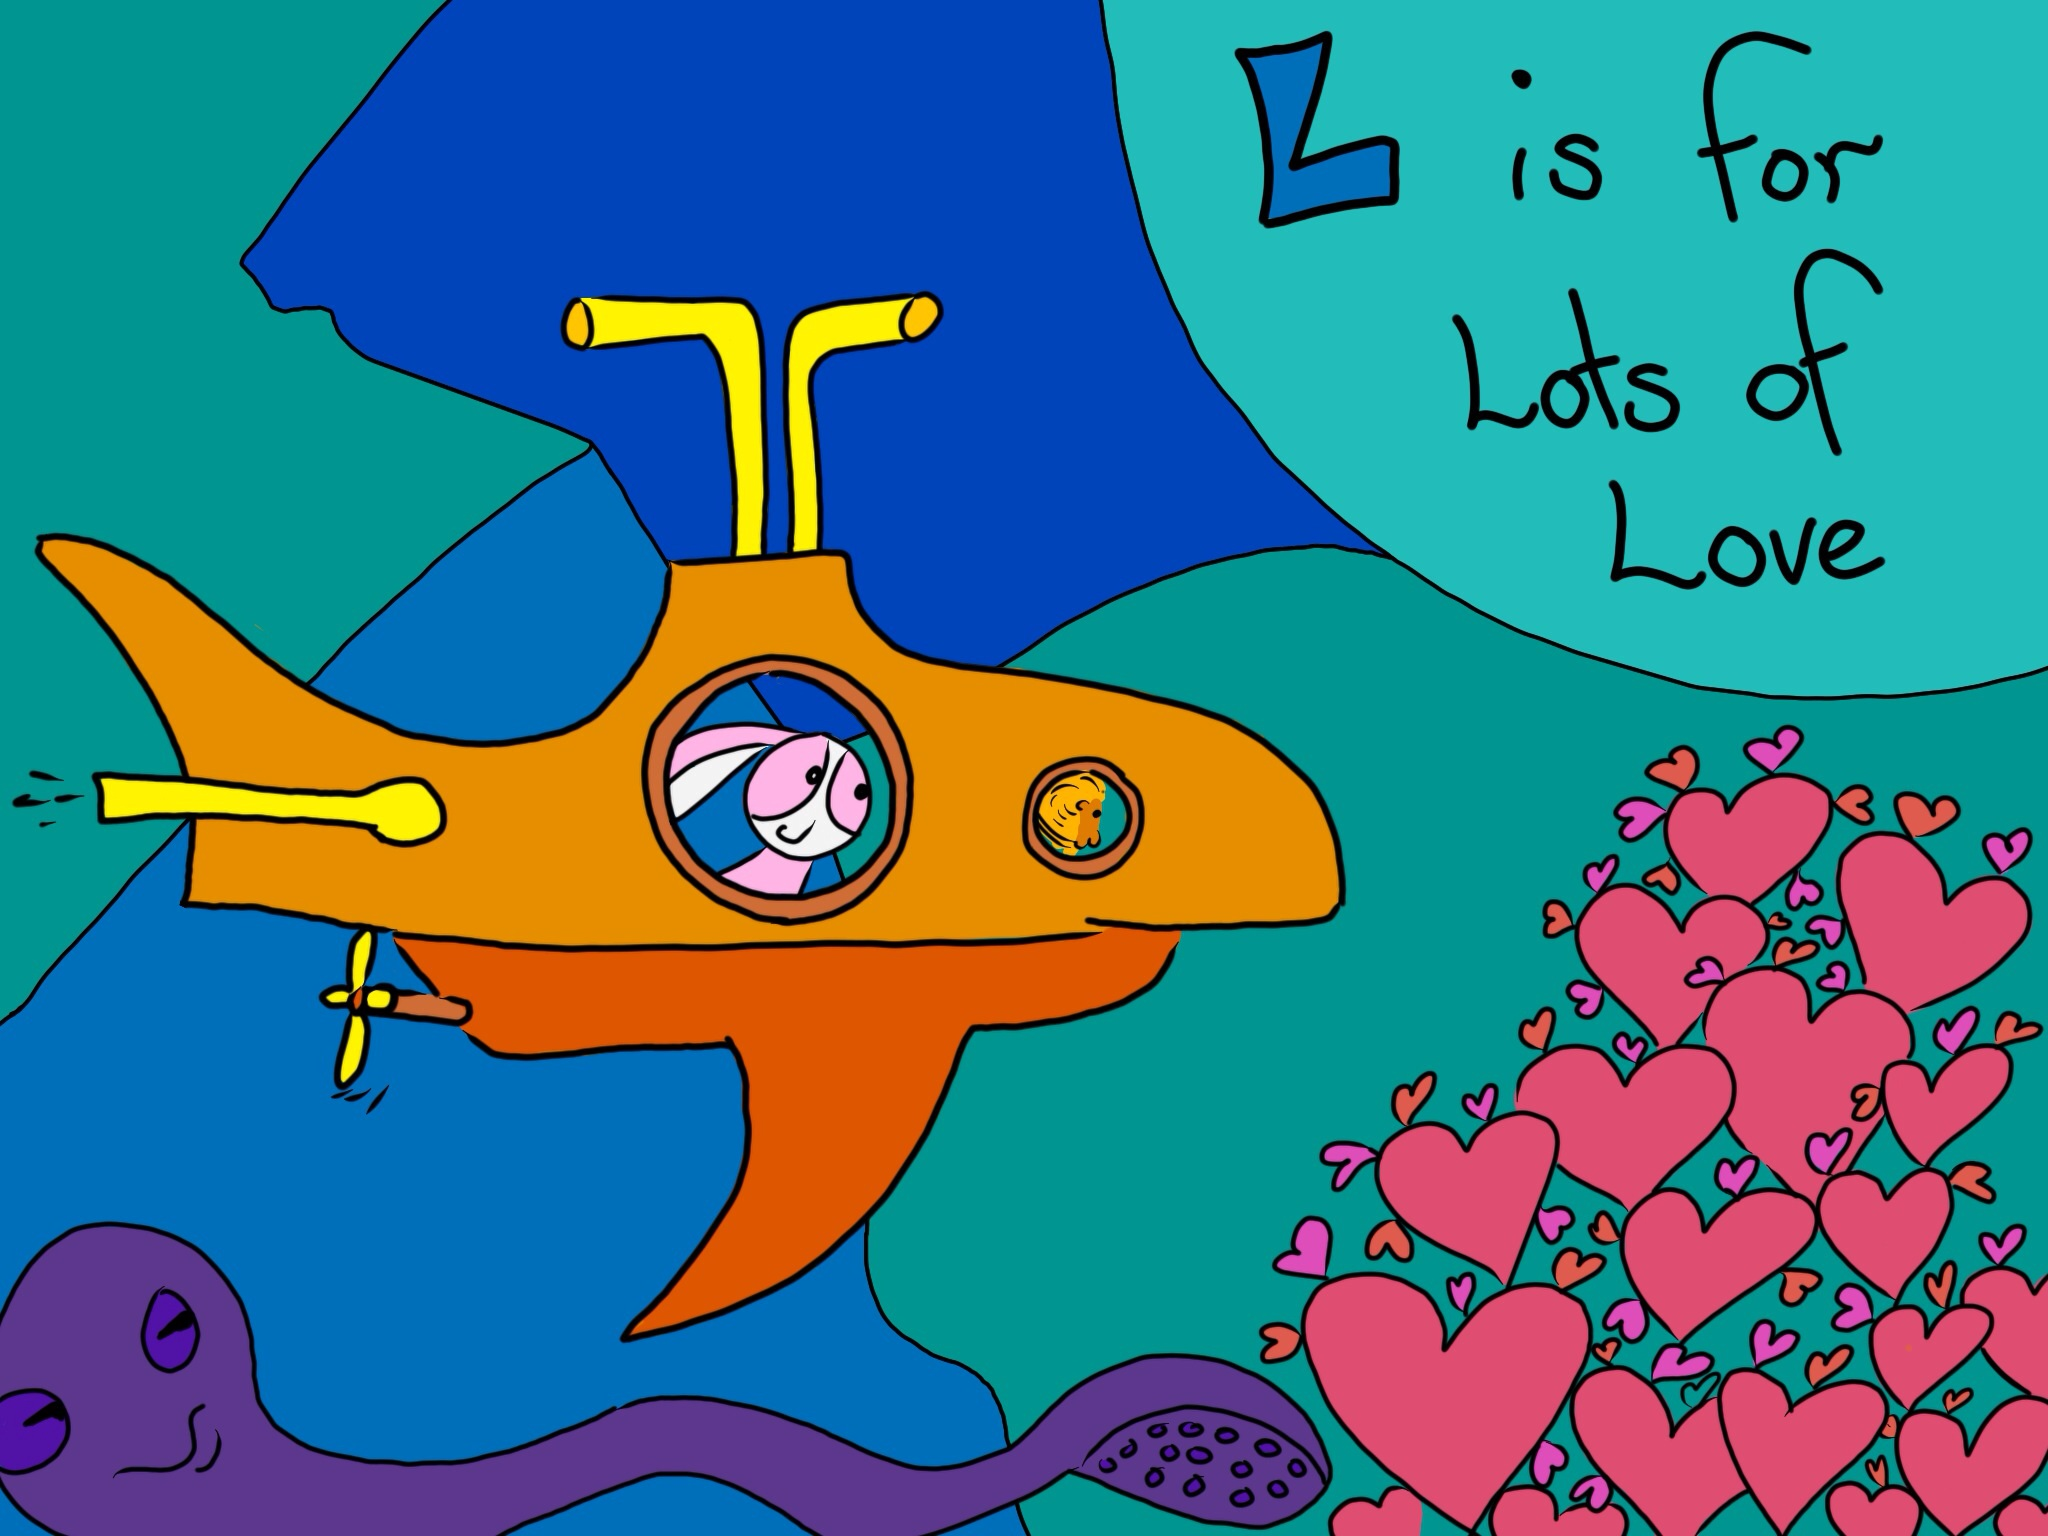 371: L is for Love